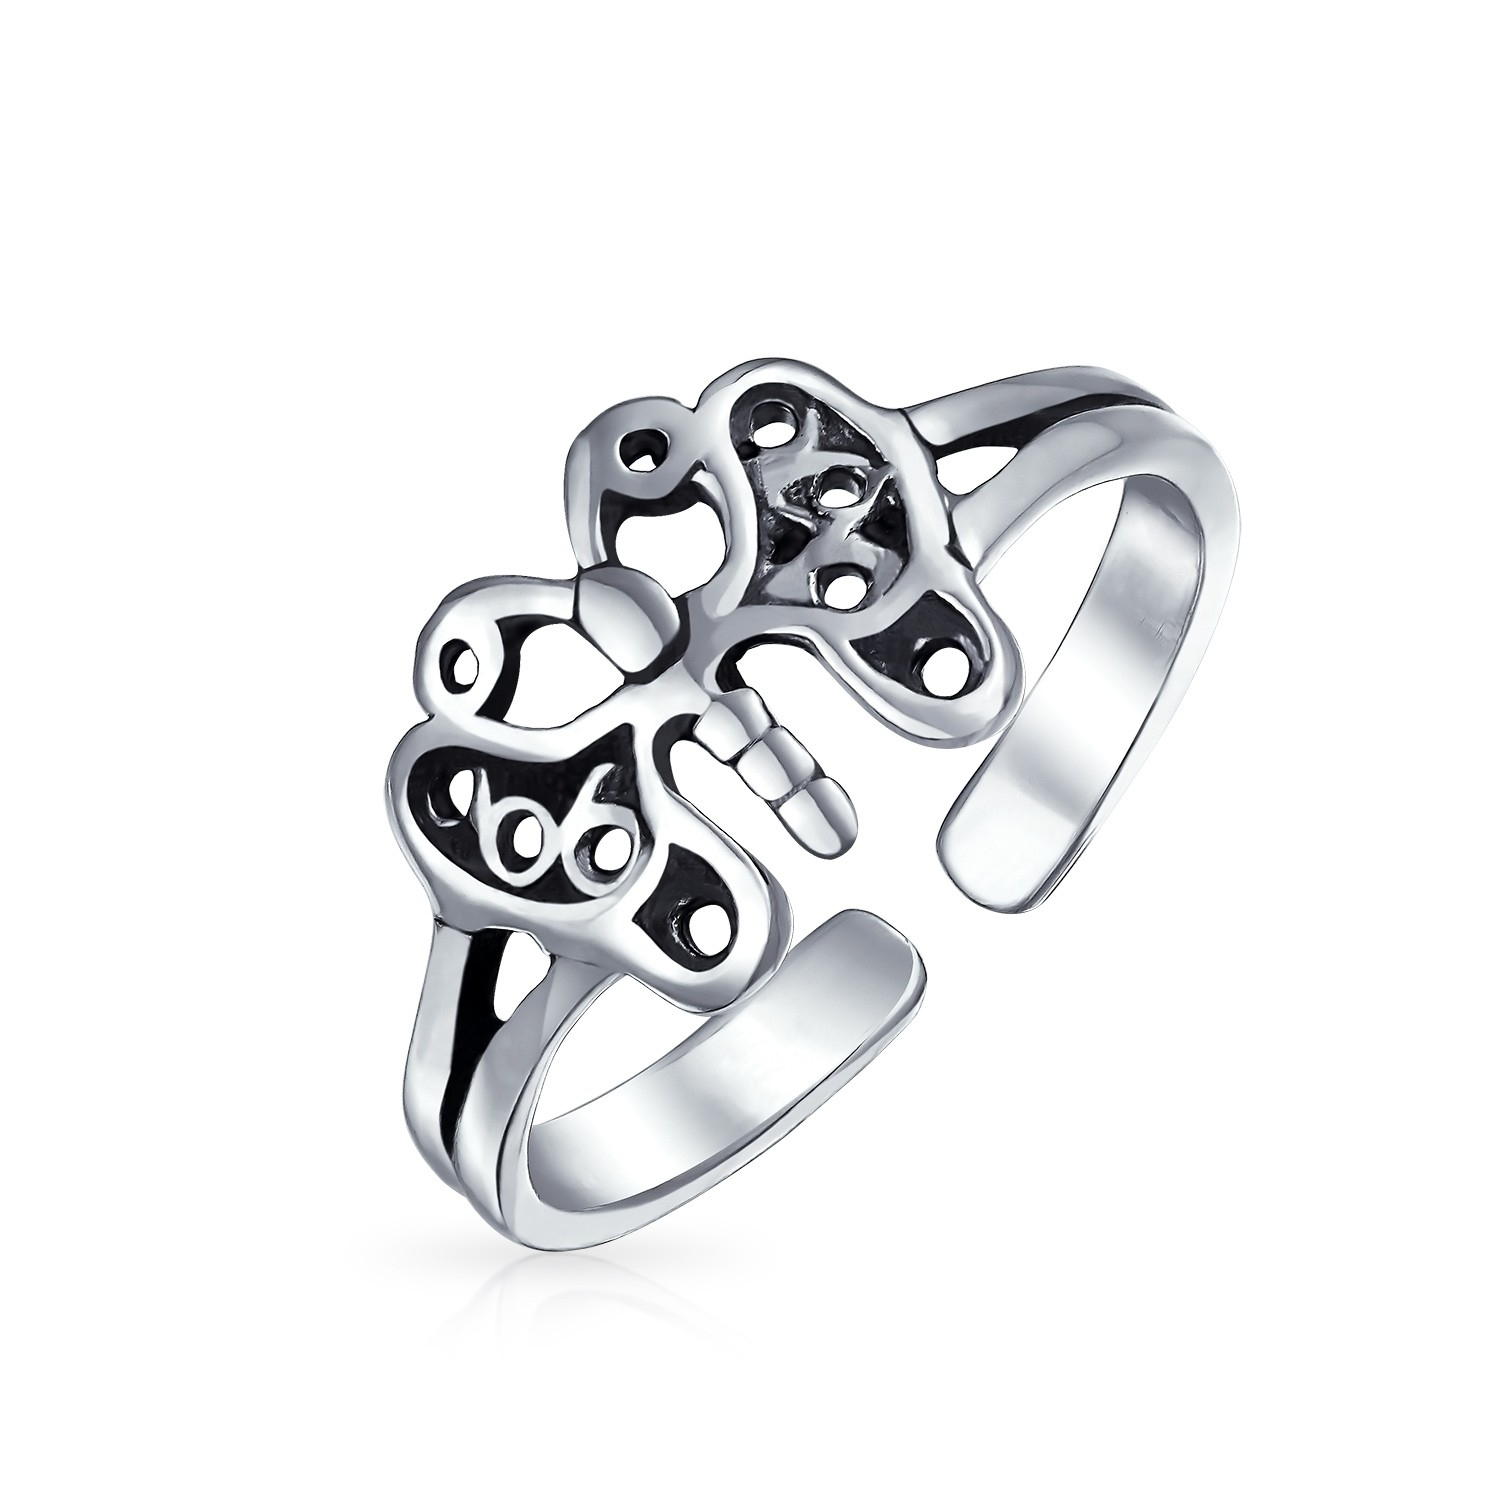 Filigree Butterfly Toe Ring Adjustable Sterling Silver Midi Rings Throughout Most Current Platinum Toe Rings (View 5 of 15)